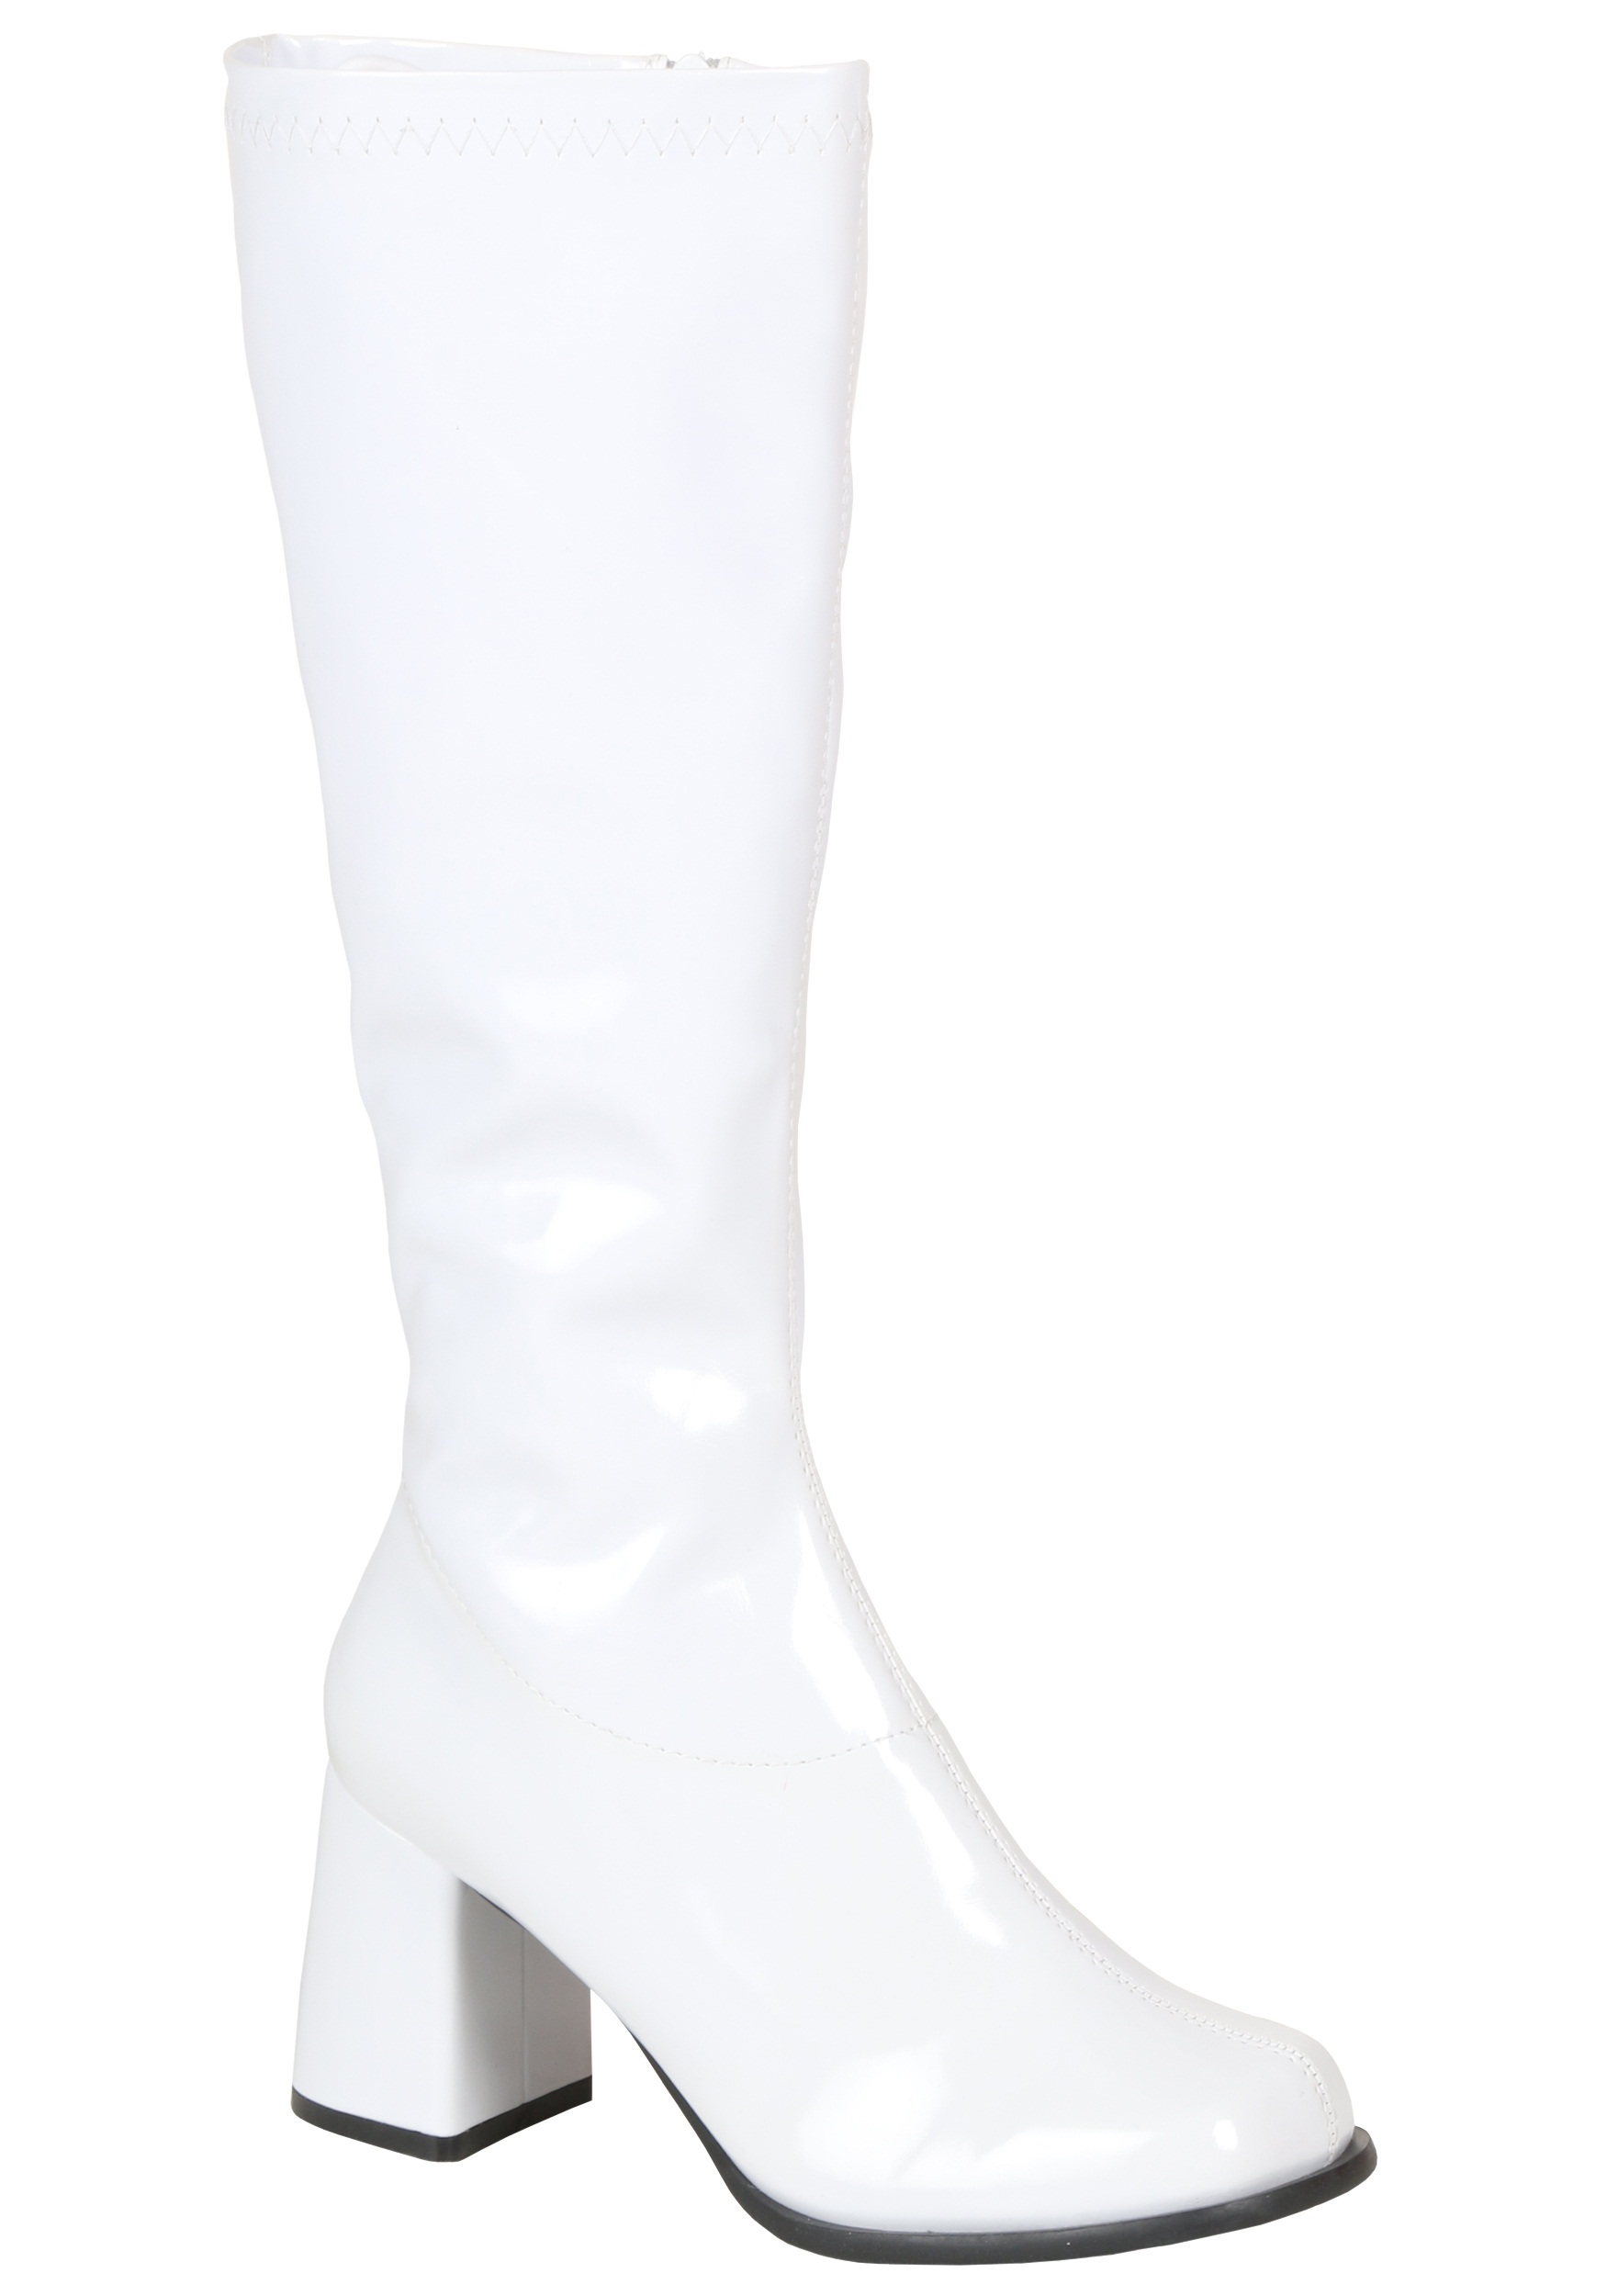 Shop for womens white boots online at Target. Free shipping on purchases over $35 and save 5% every day with your Target REDcard.